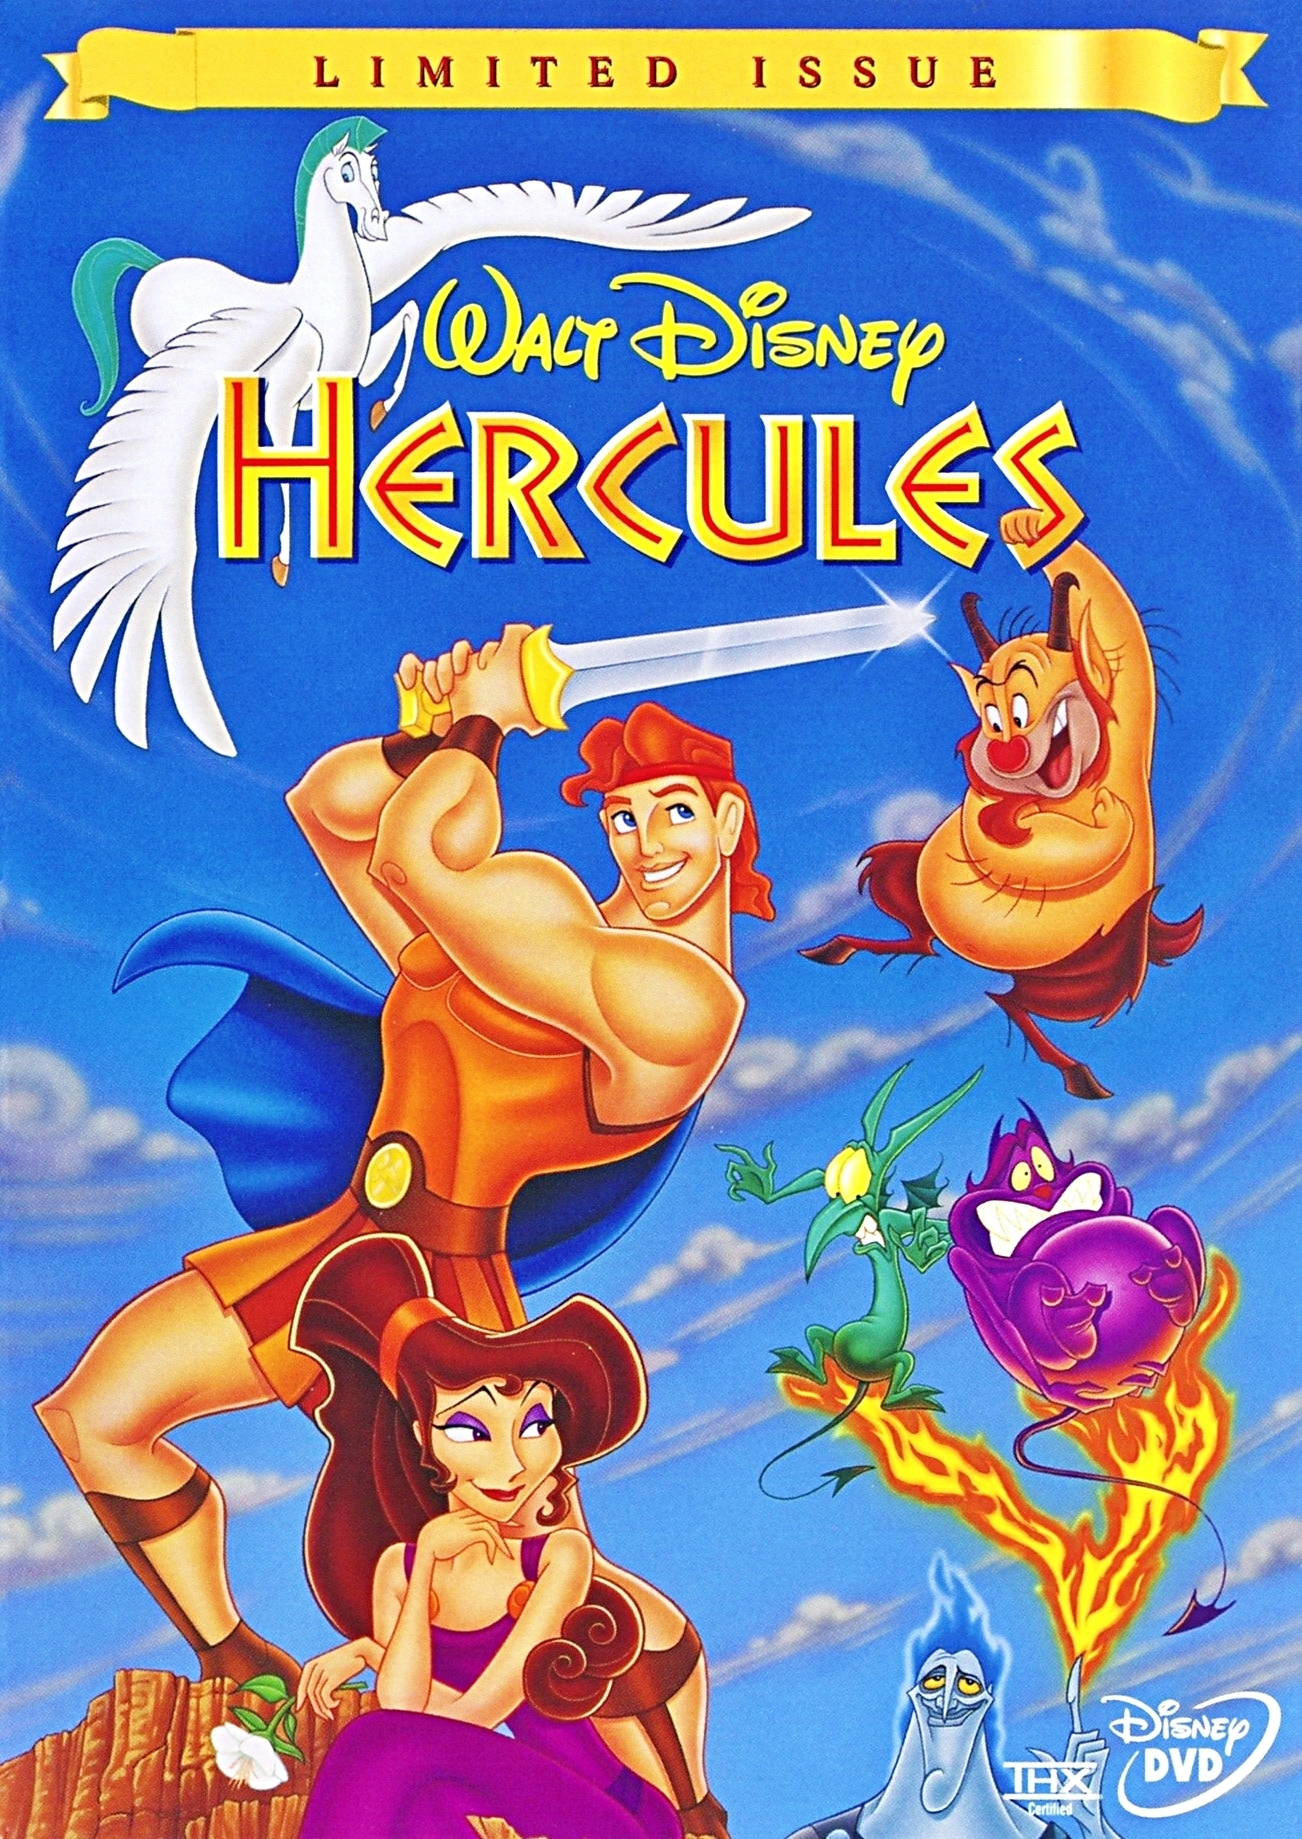 http://images4.fanpop.com/image/photos/19200000/Hercules-Limited-Issue-DVD-Cover-walt-disney-characters-19286986-1302-1839.jpg